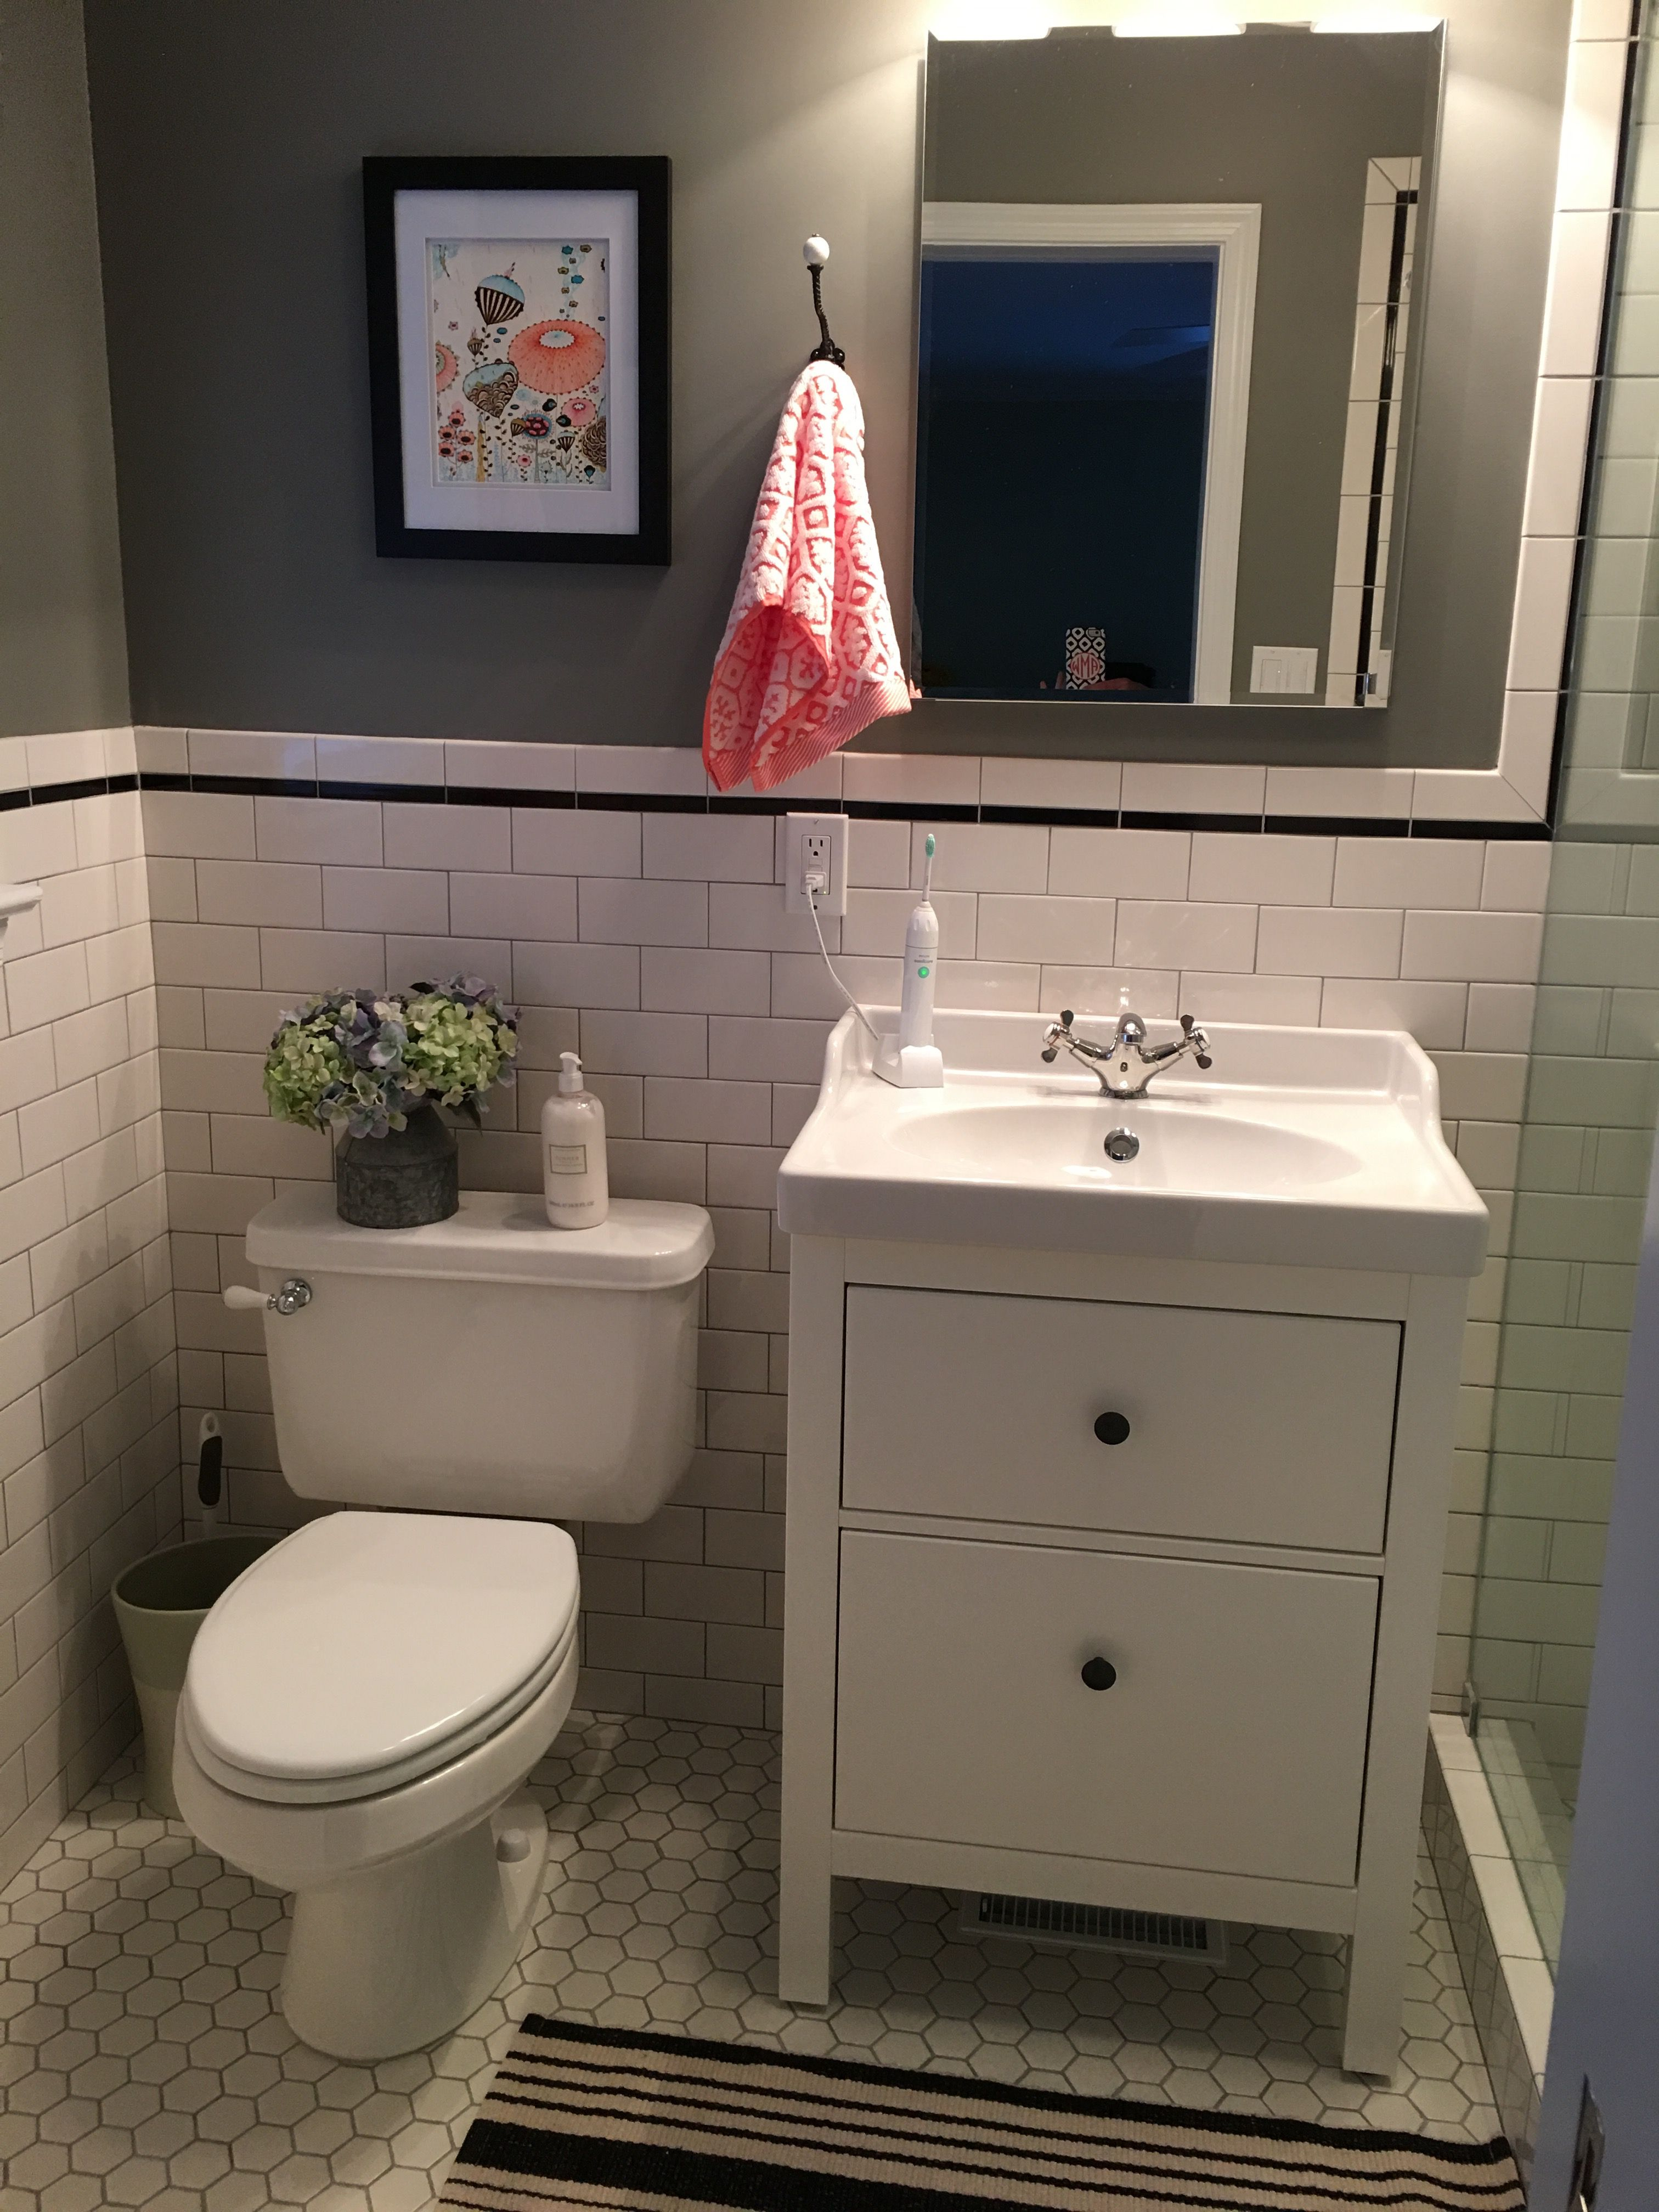 Basement Bathroom Ideas On Budget, Low Ceiling And For Small Space Check  It Out !!